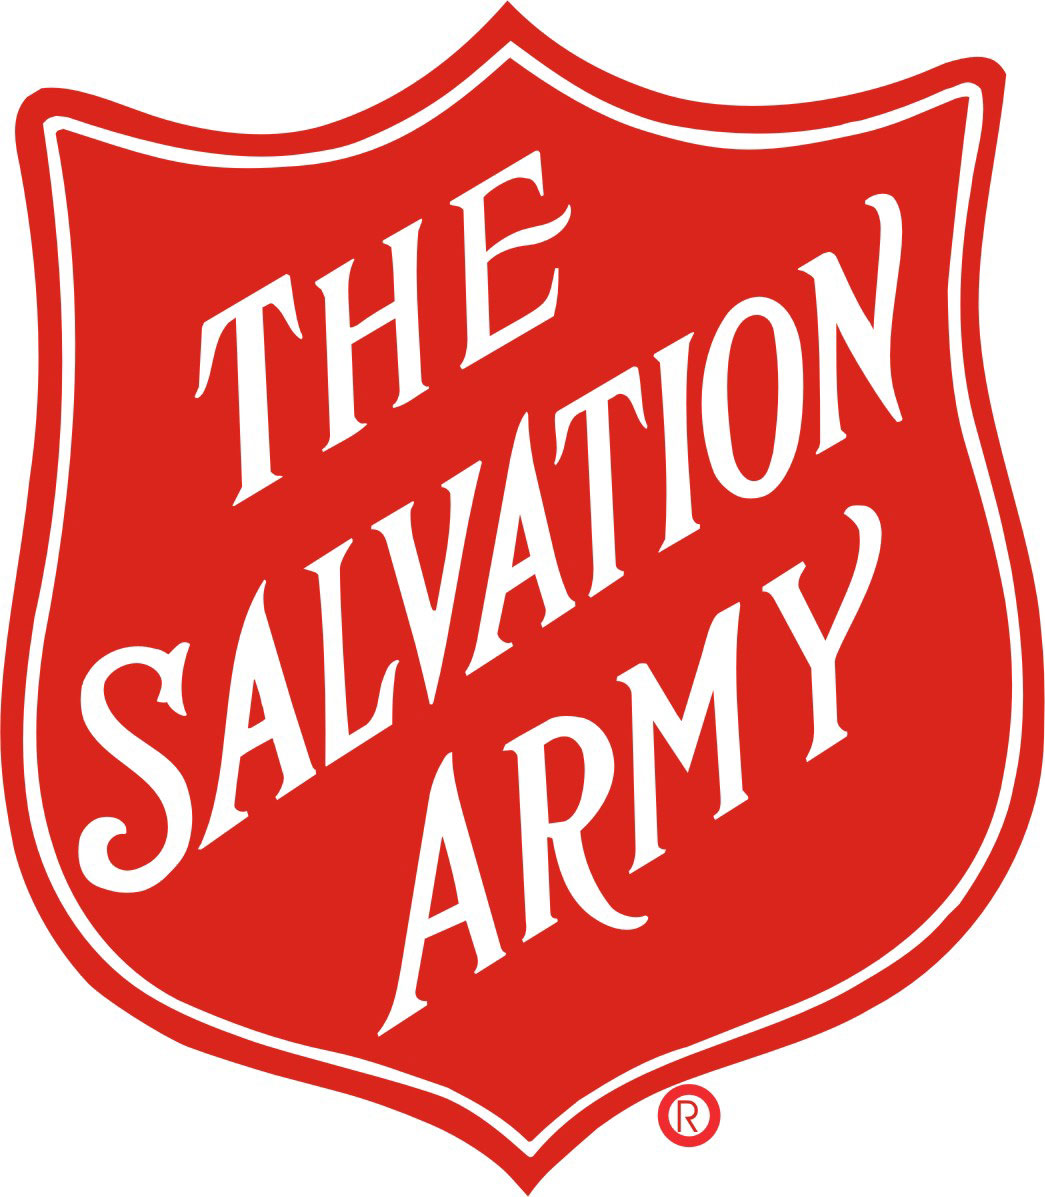 Salvation Army Clipart Free.